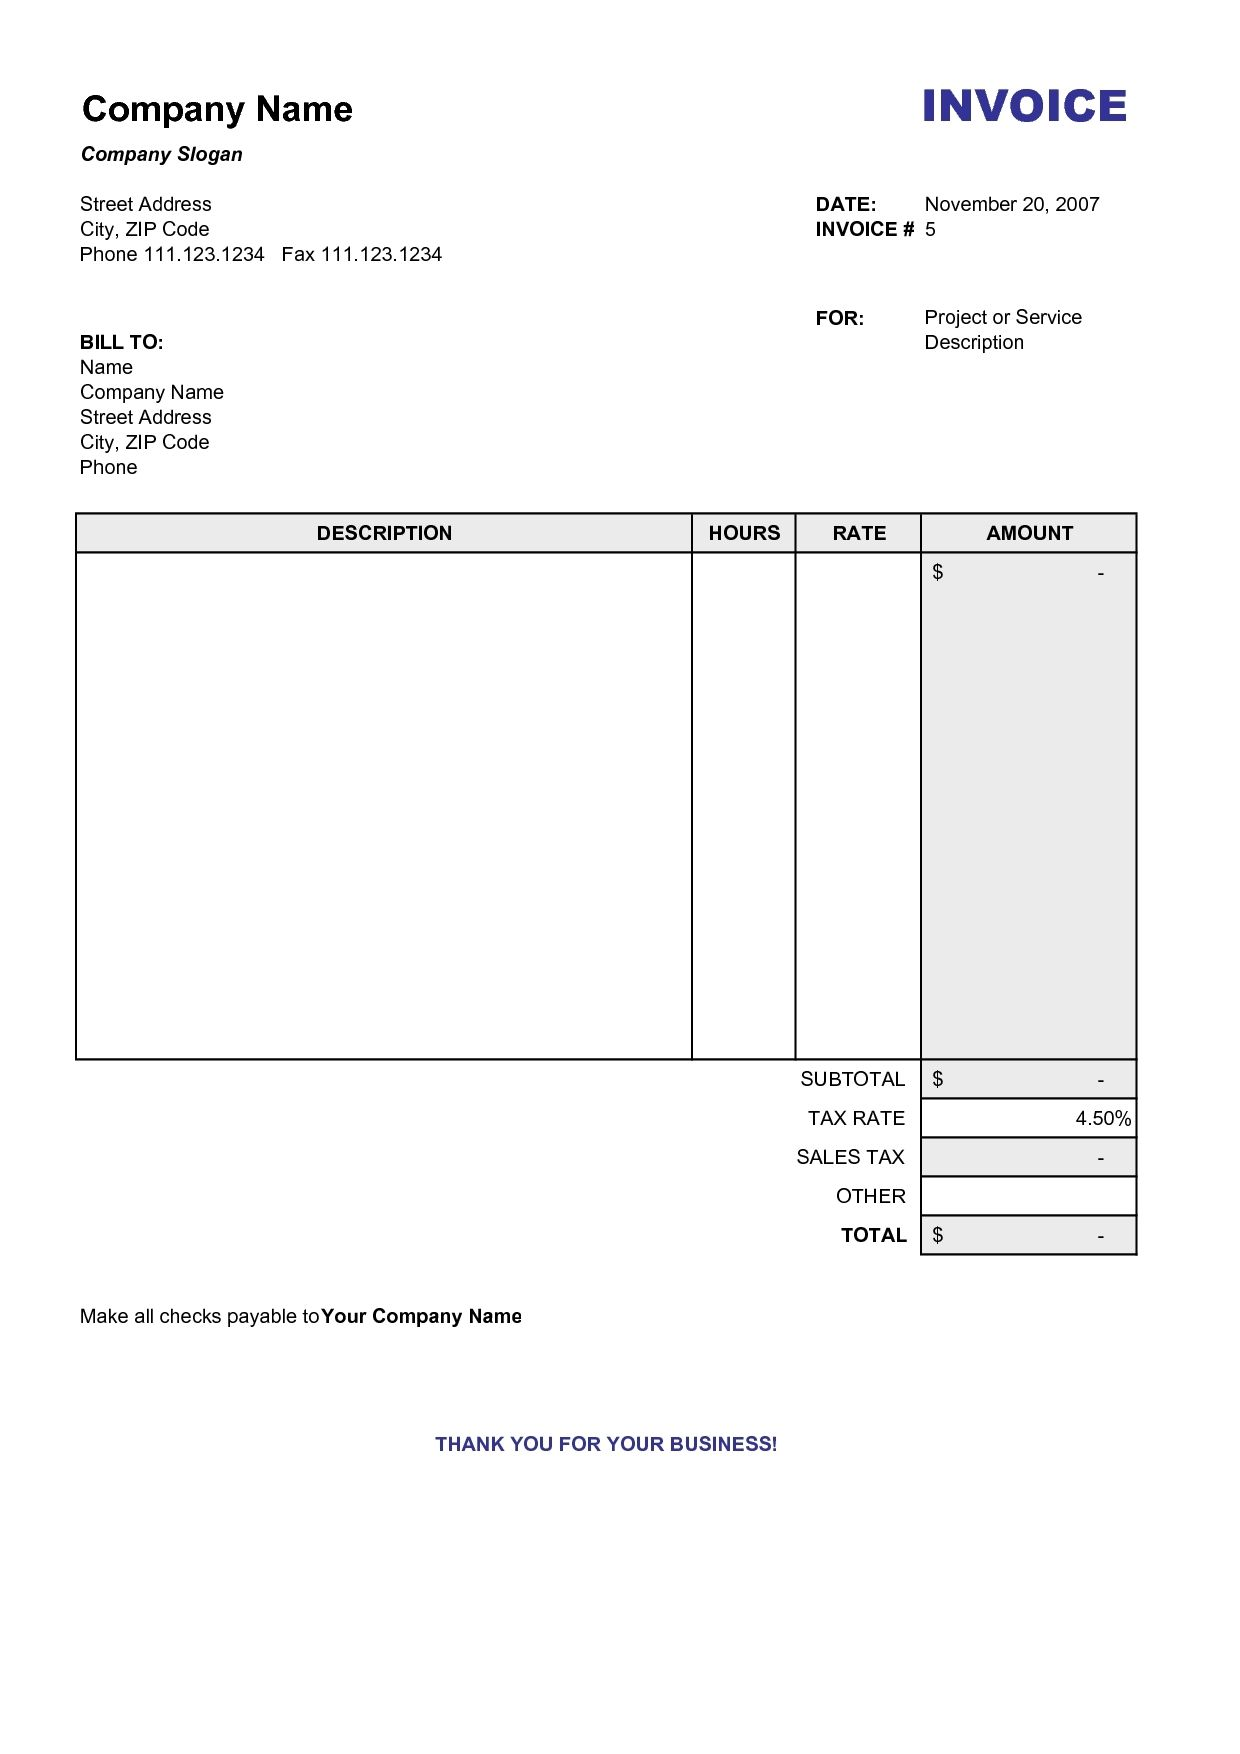 Copy Of A Blank Invoice Invoice Template Free Copy Of Blank - Law firm invoice template word for service business